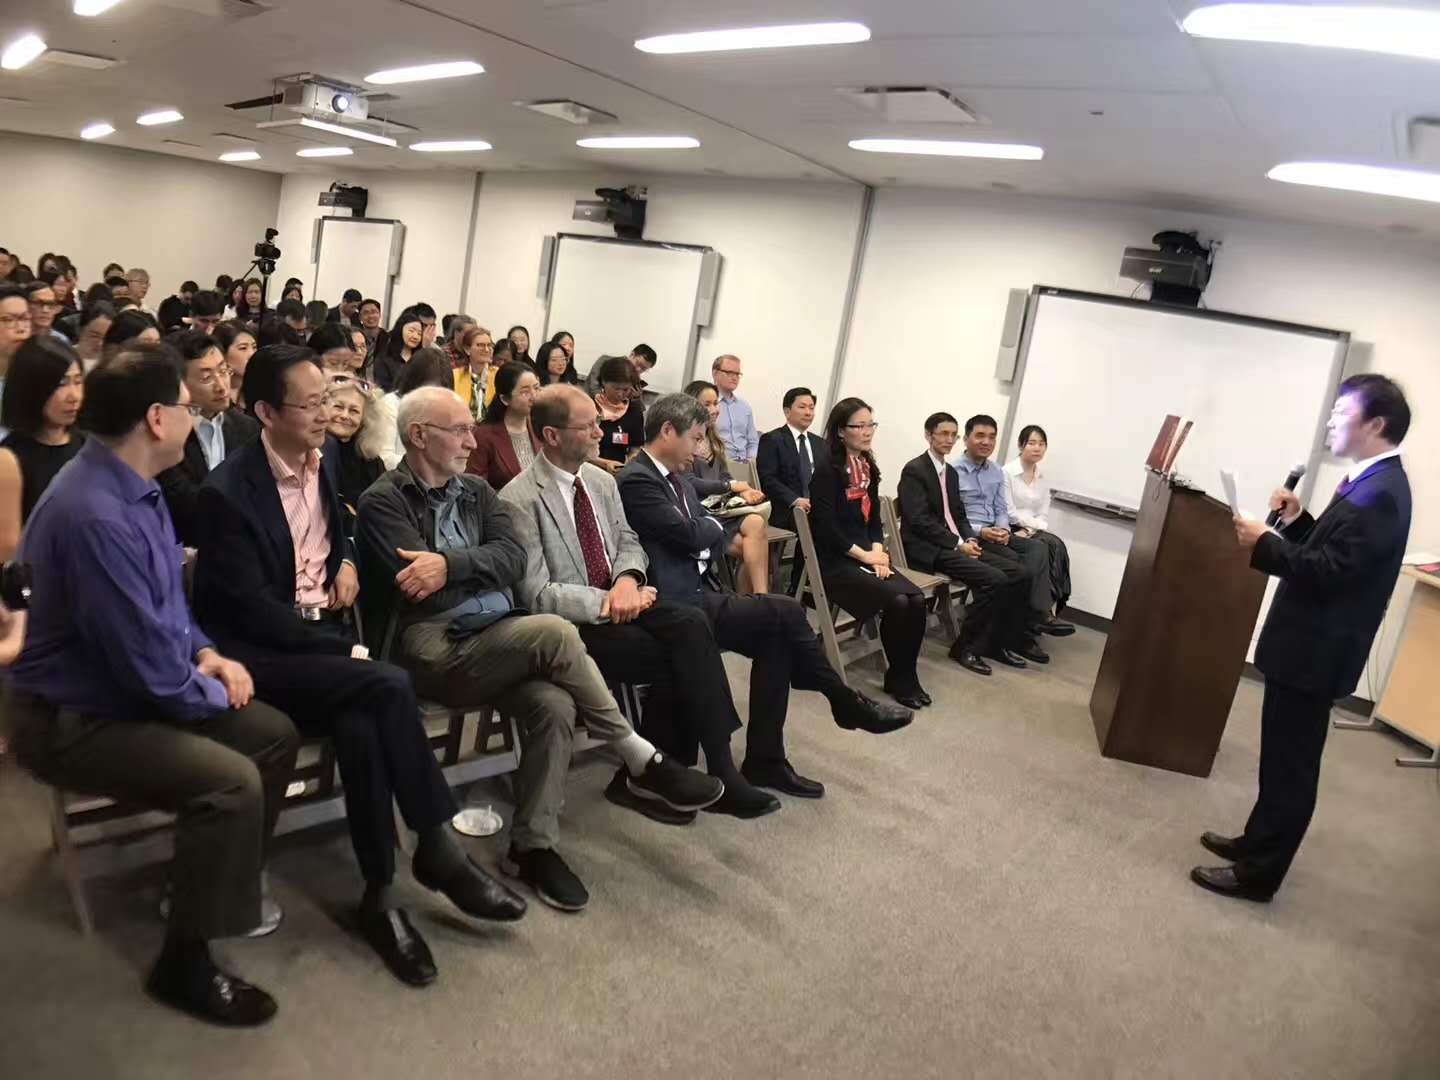 The launch ceremony is held in the China Institute in America.